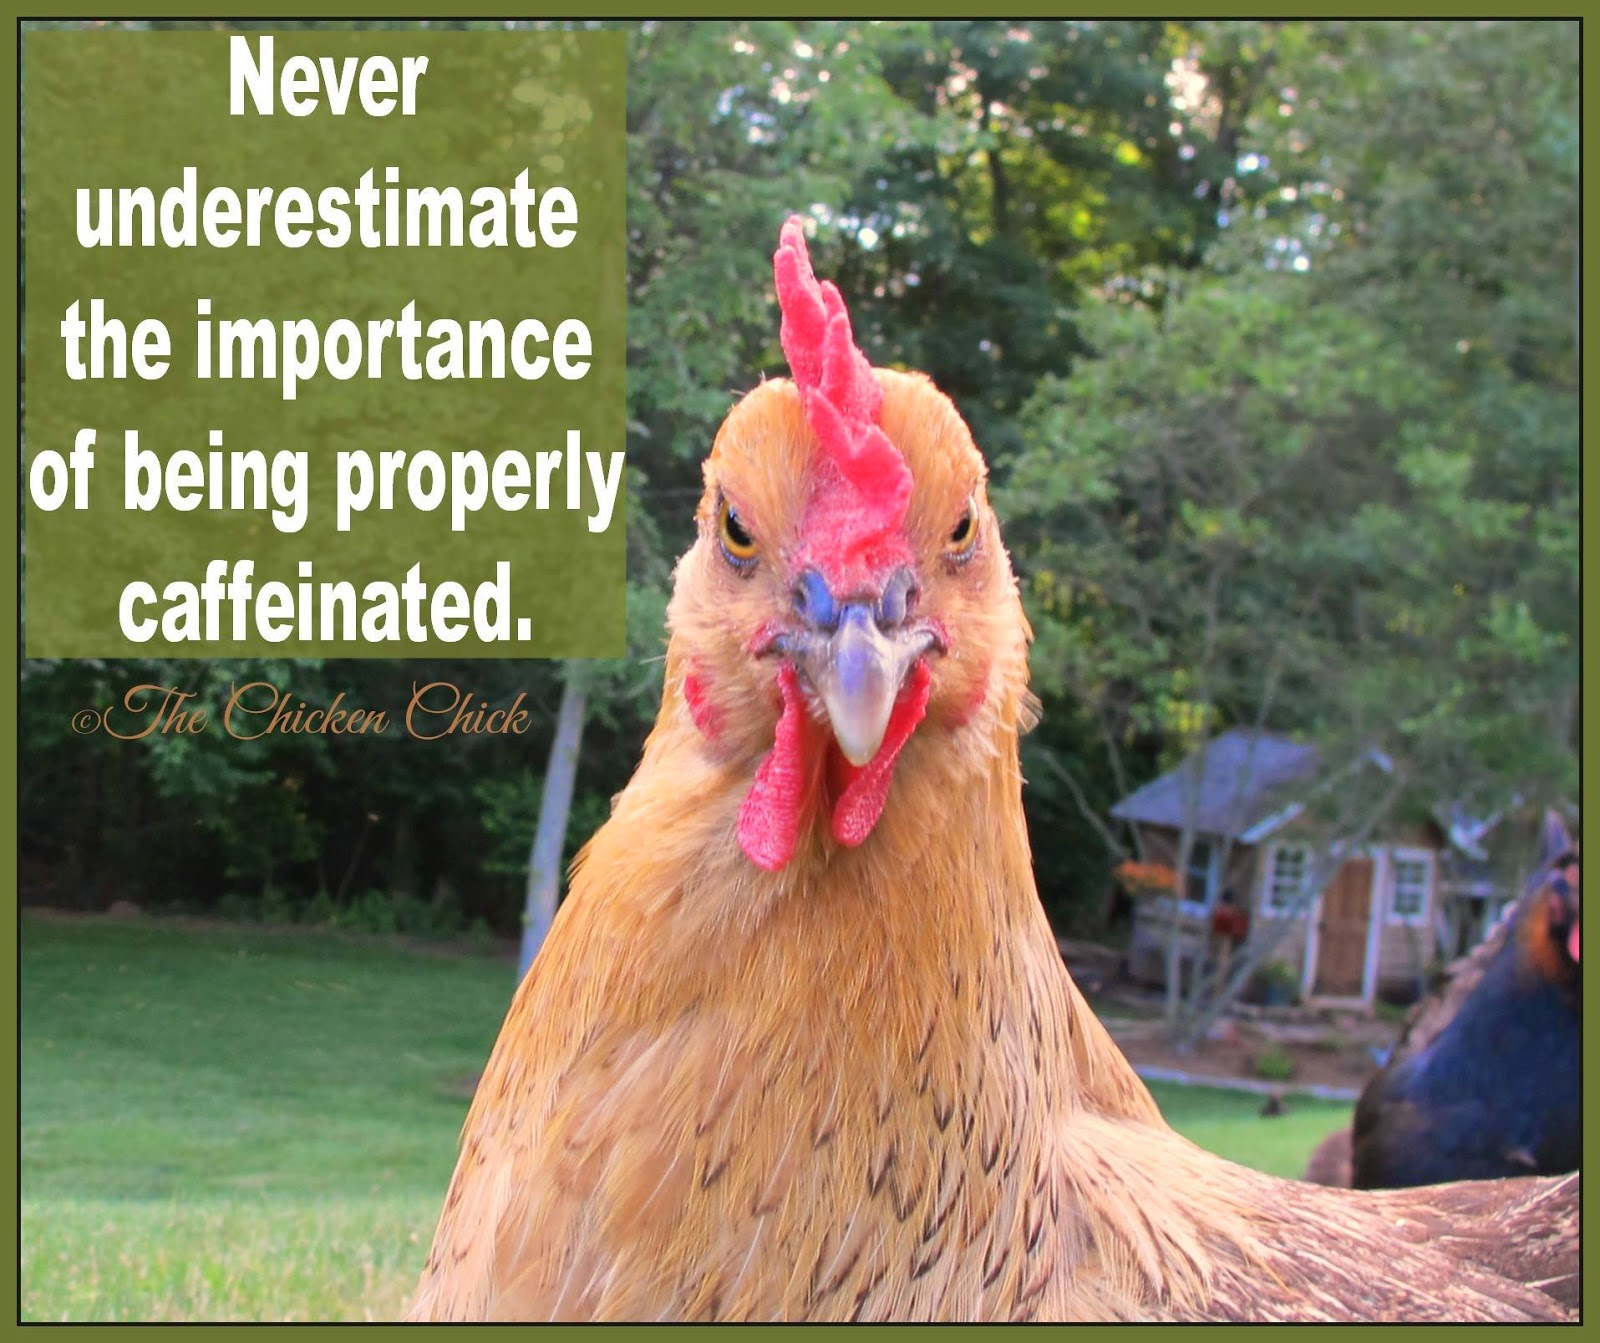 Never underestimate the importance of being properly caffeinated.